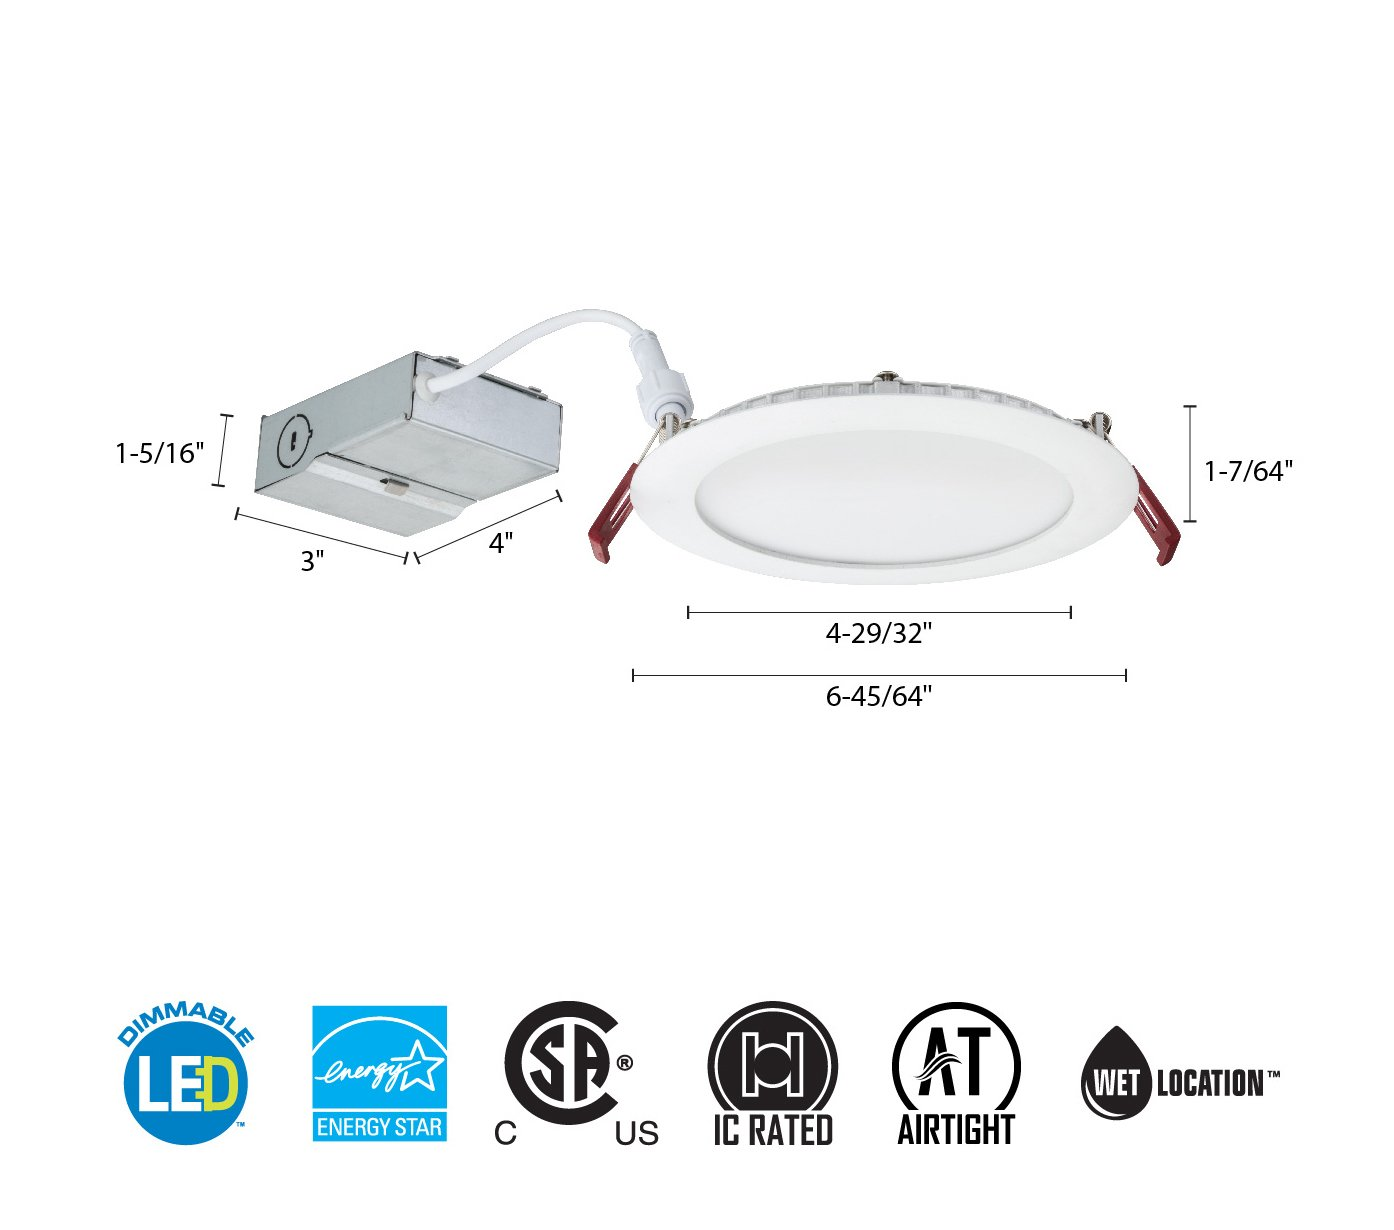 Lithonia Lighting Wf6 Ll Led 27k Mw M6 Ultra Thin Dimmable Wiring Diagram Of Triac Dimming Downlight Connecting Over 1 Recessed Ceiling Light 2700k Warm White Matte 6 Inch